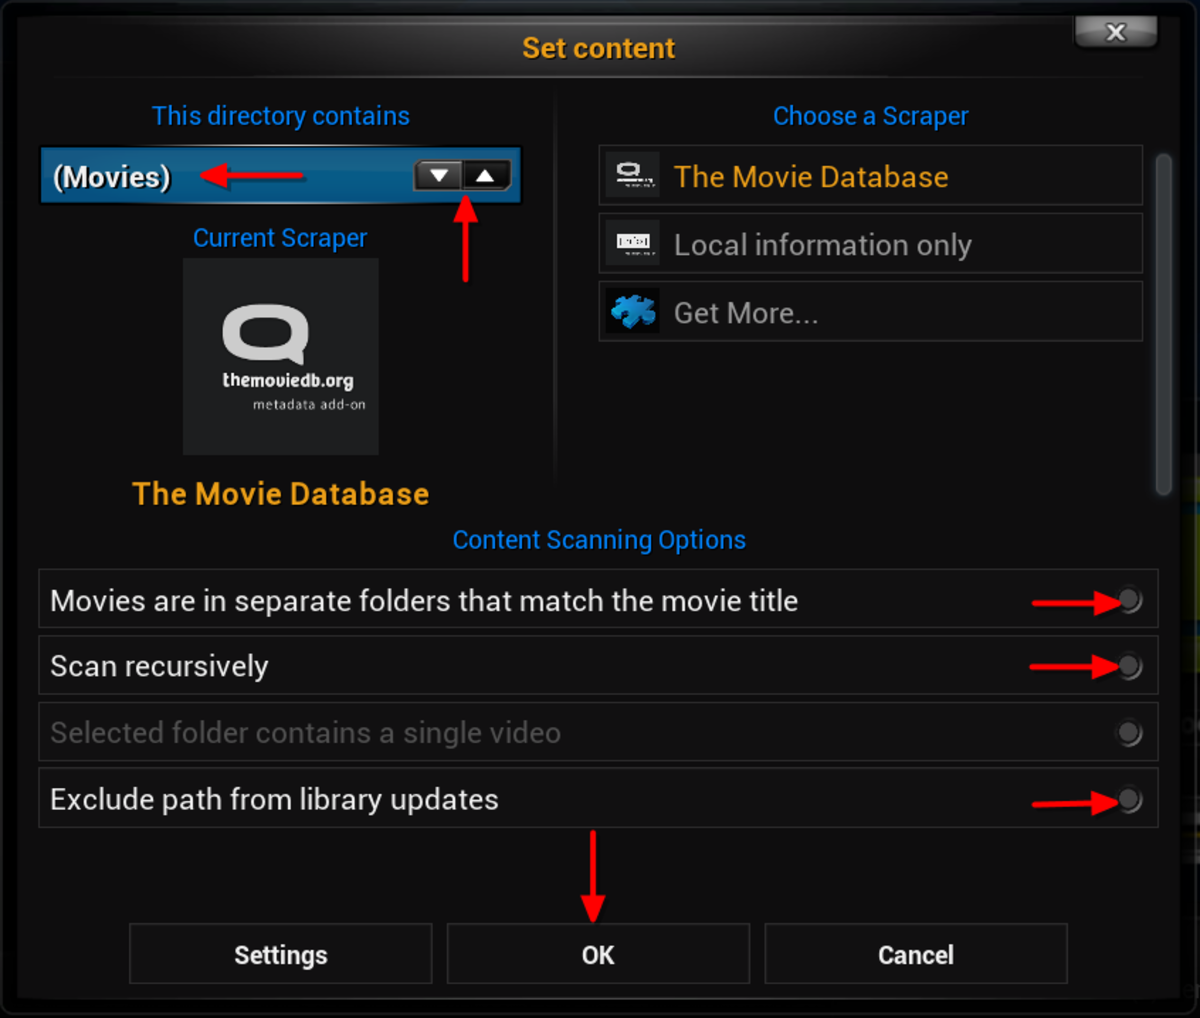 """Select the content type contained in the media source by clicking the up/down arrows. """"Scan recursively"""" needs to be checked if you have subfolders such as movies organized by Genre. """"Exclude path"""" should not be selected if  content will be added."""